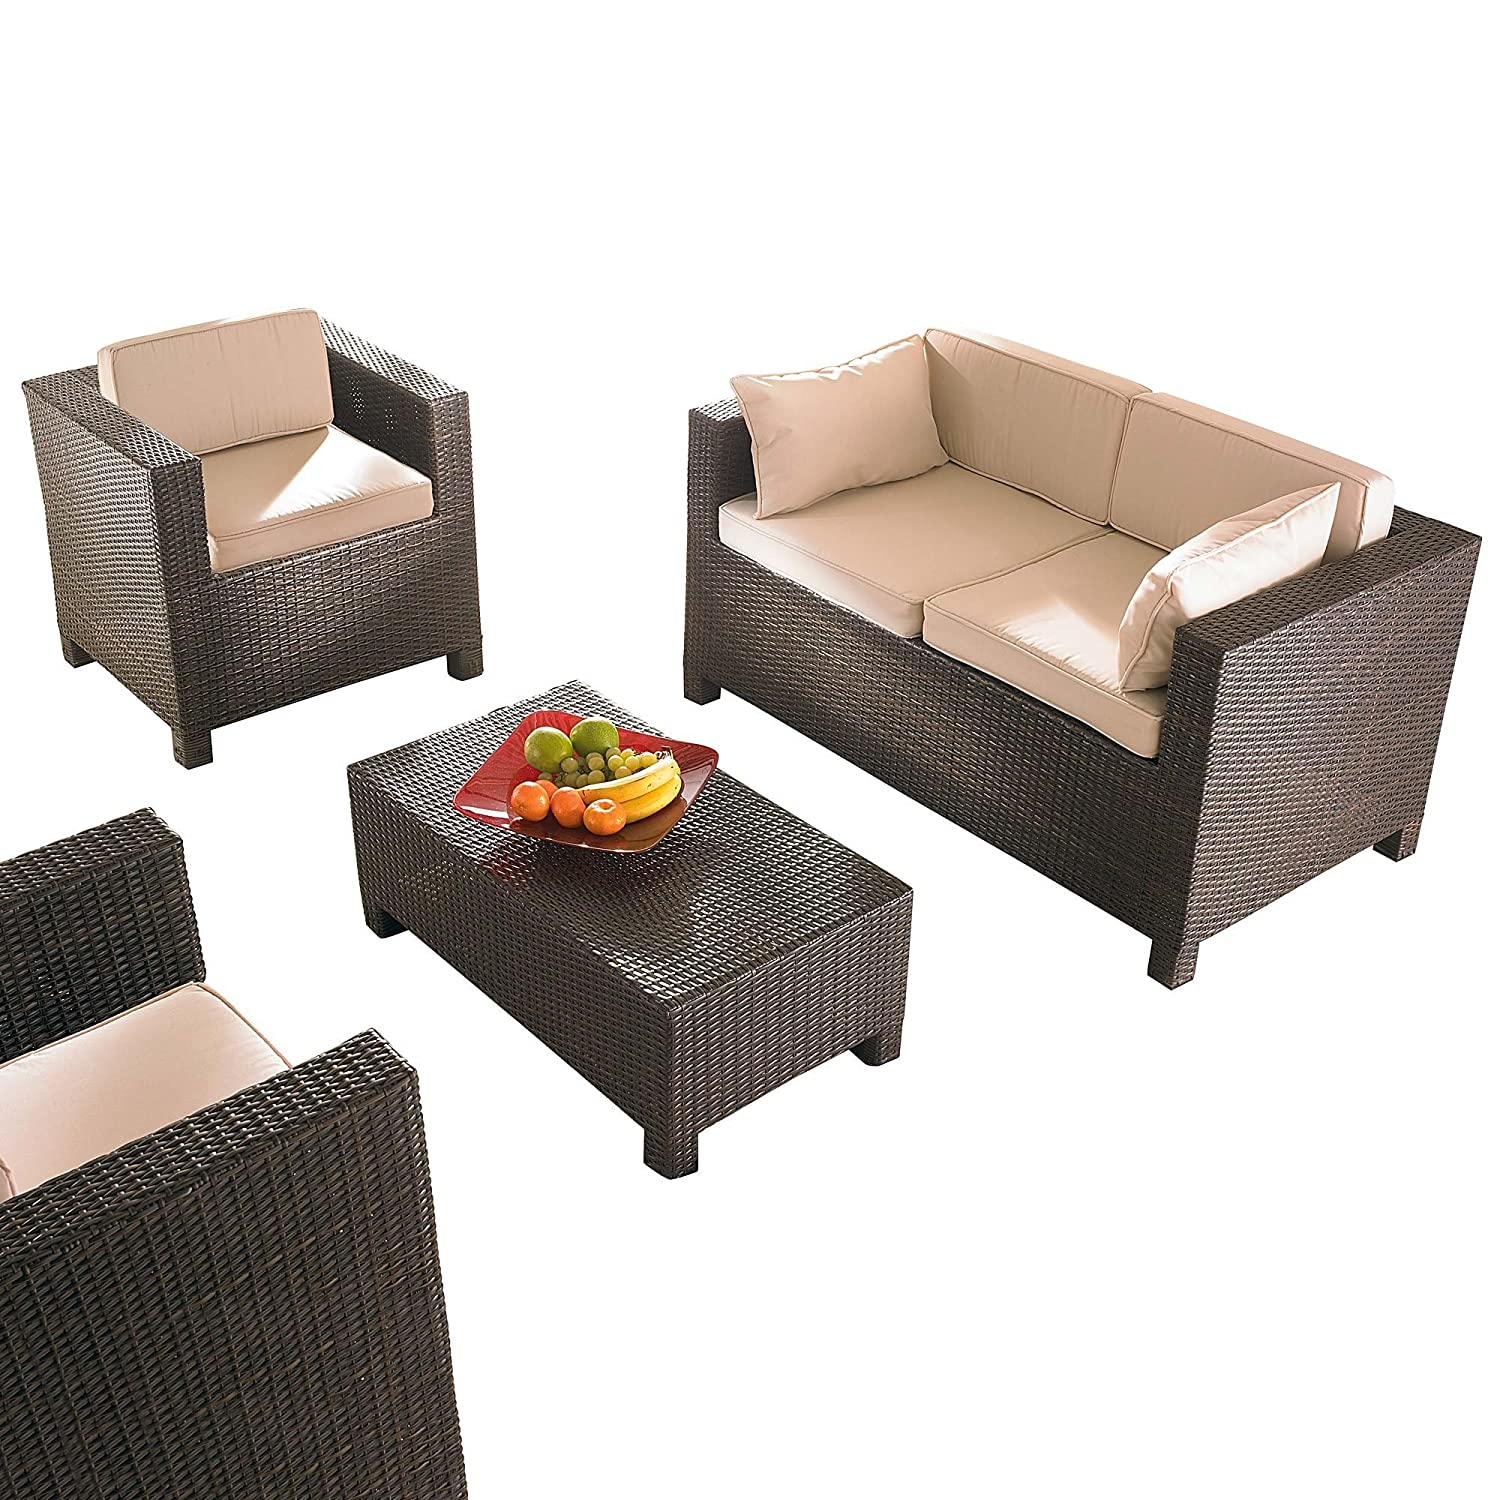 gartenm bel set cube inklusive 2 sessel 1 couch und 1. Black Bedroom Furniture Sets. Home Design Ideas